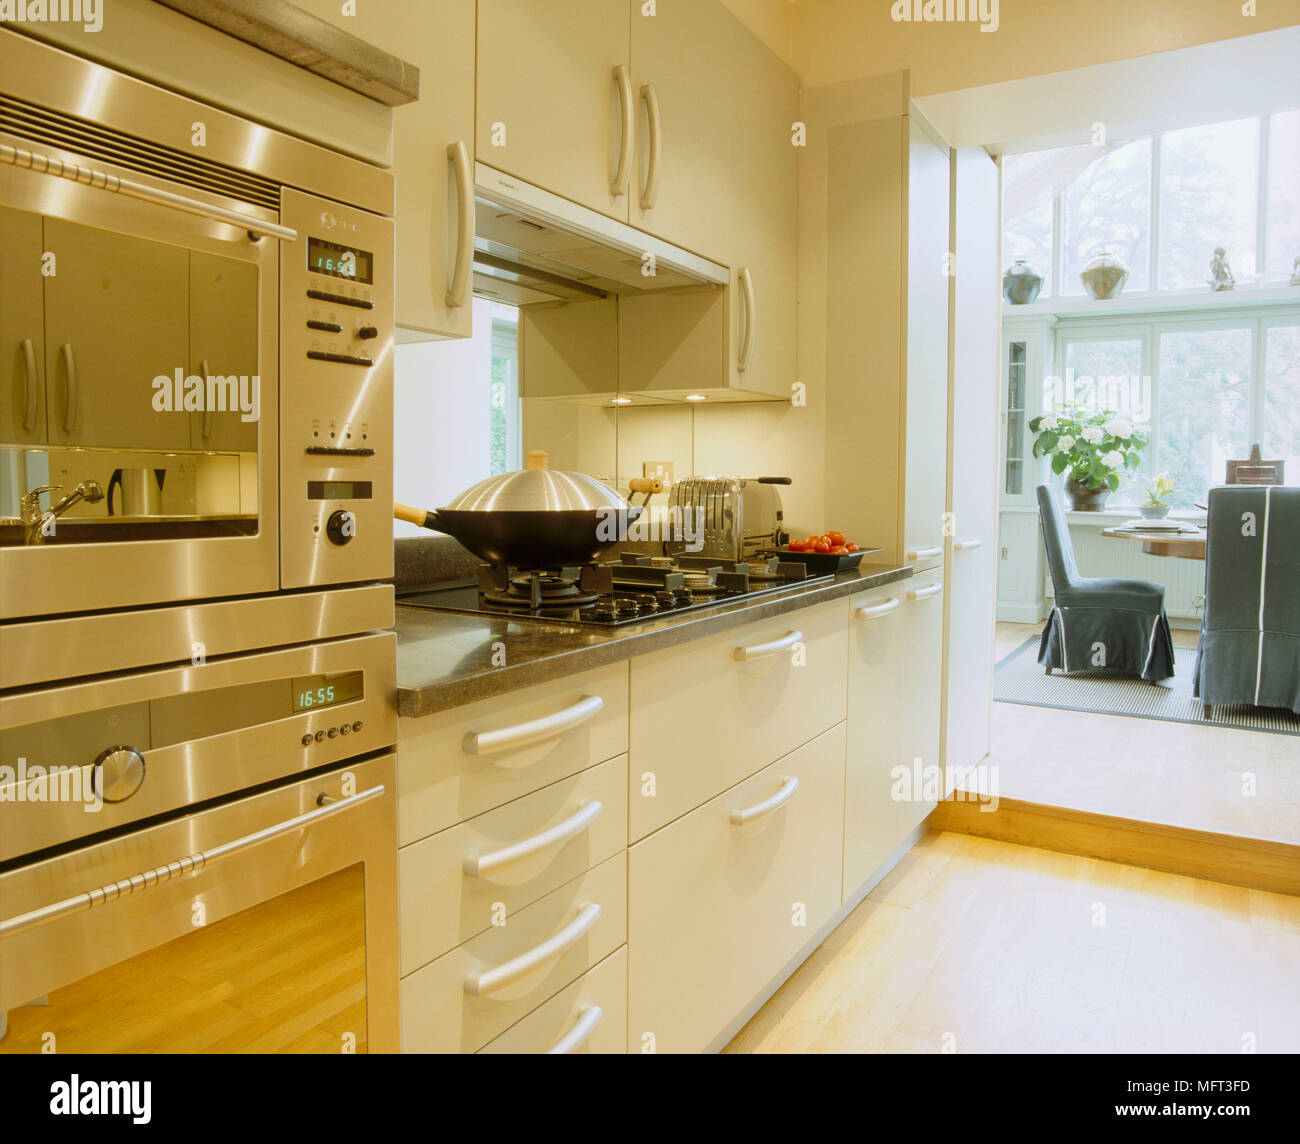 Kitchen View Into Dining Room Cream Cabinets Hob Cooker Wok Table